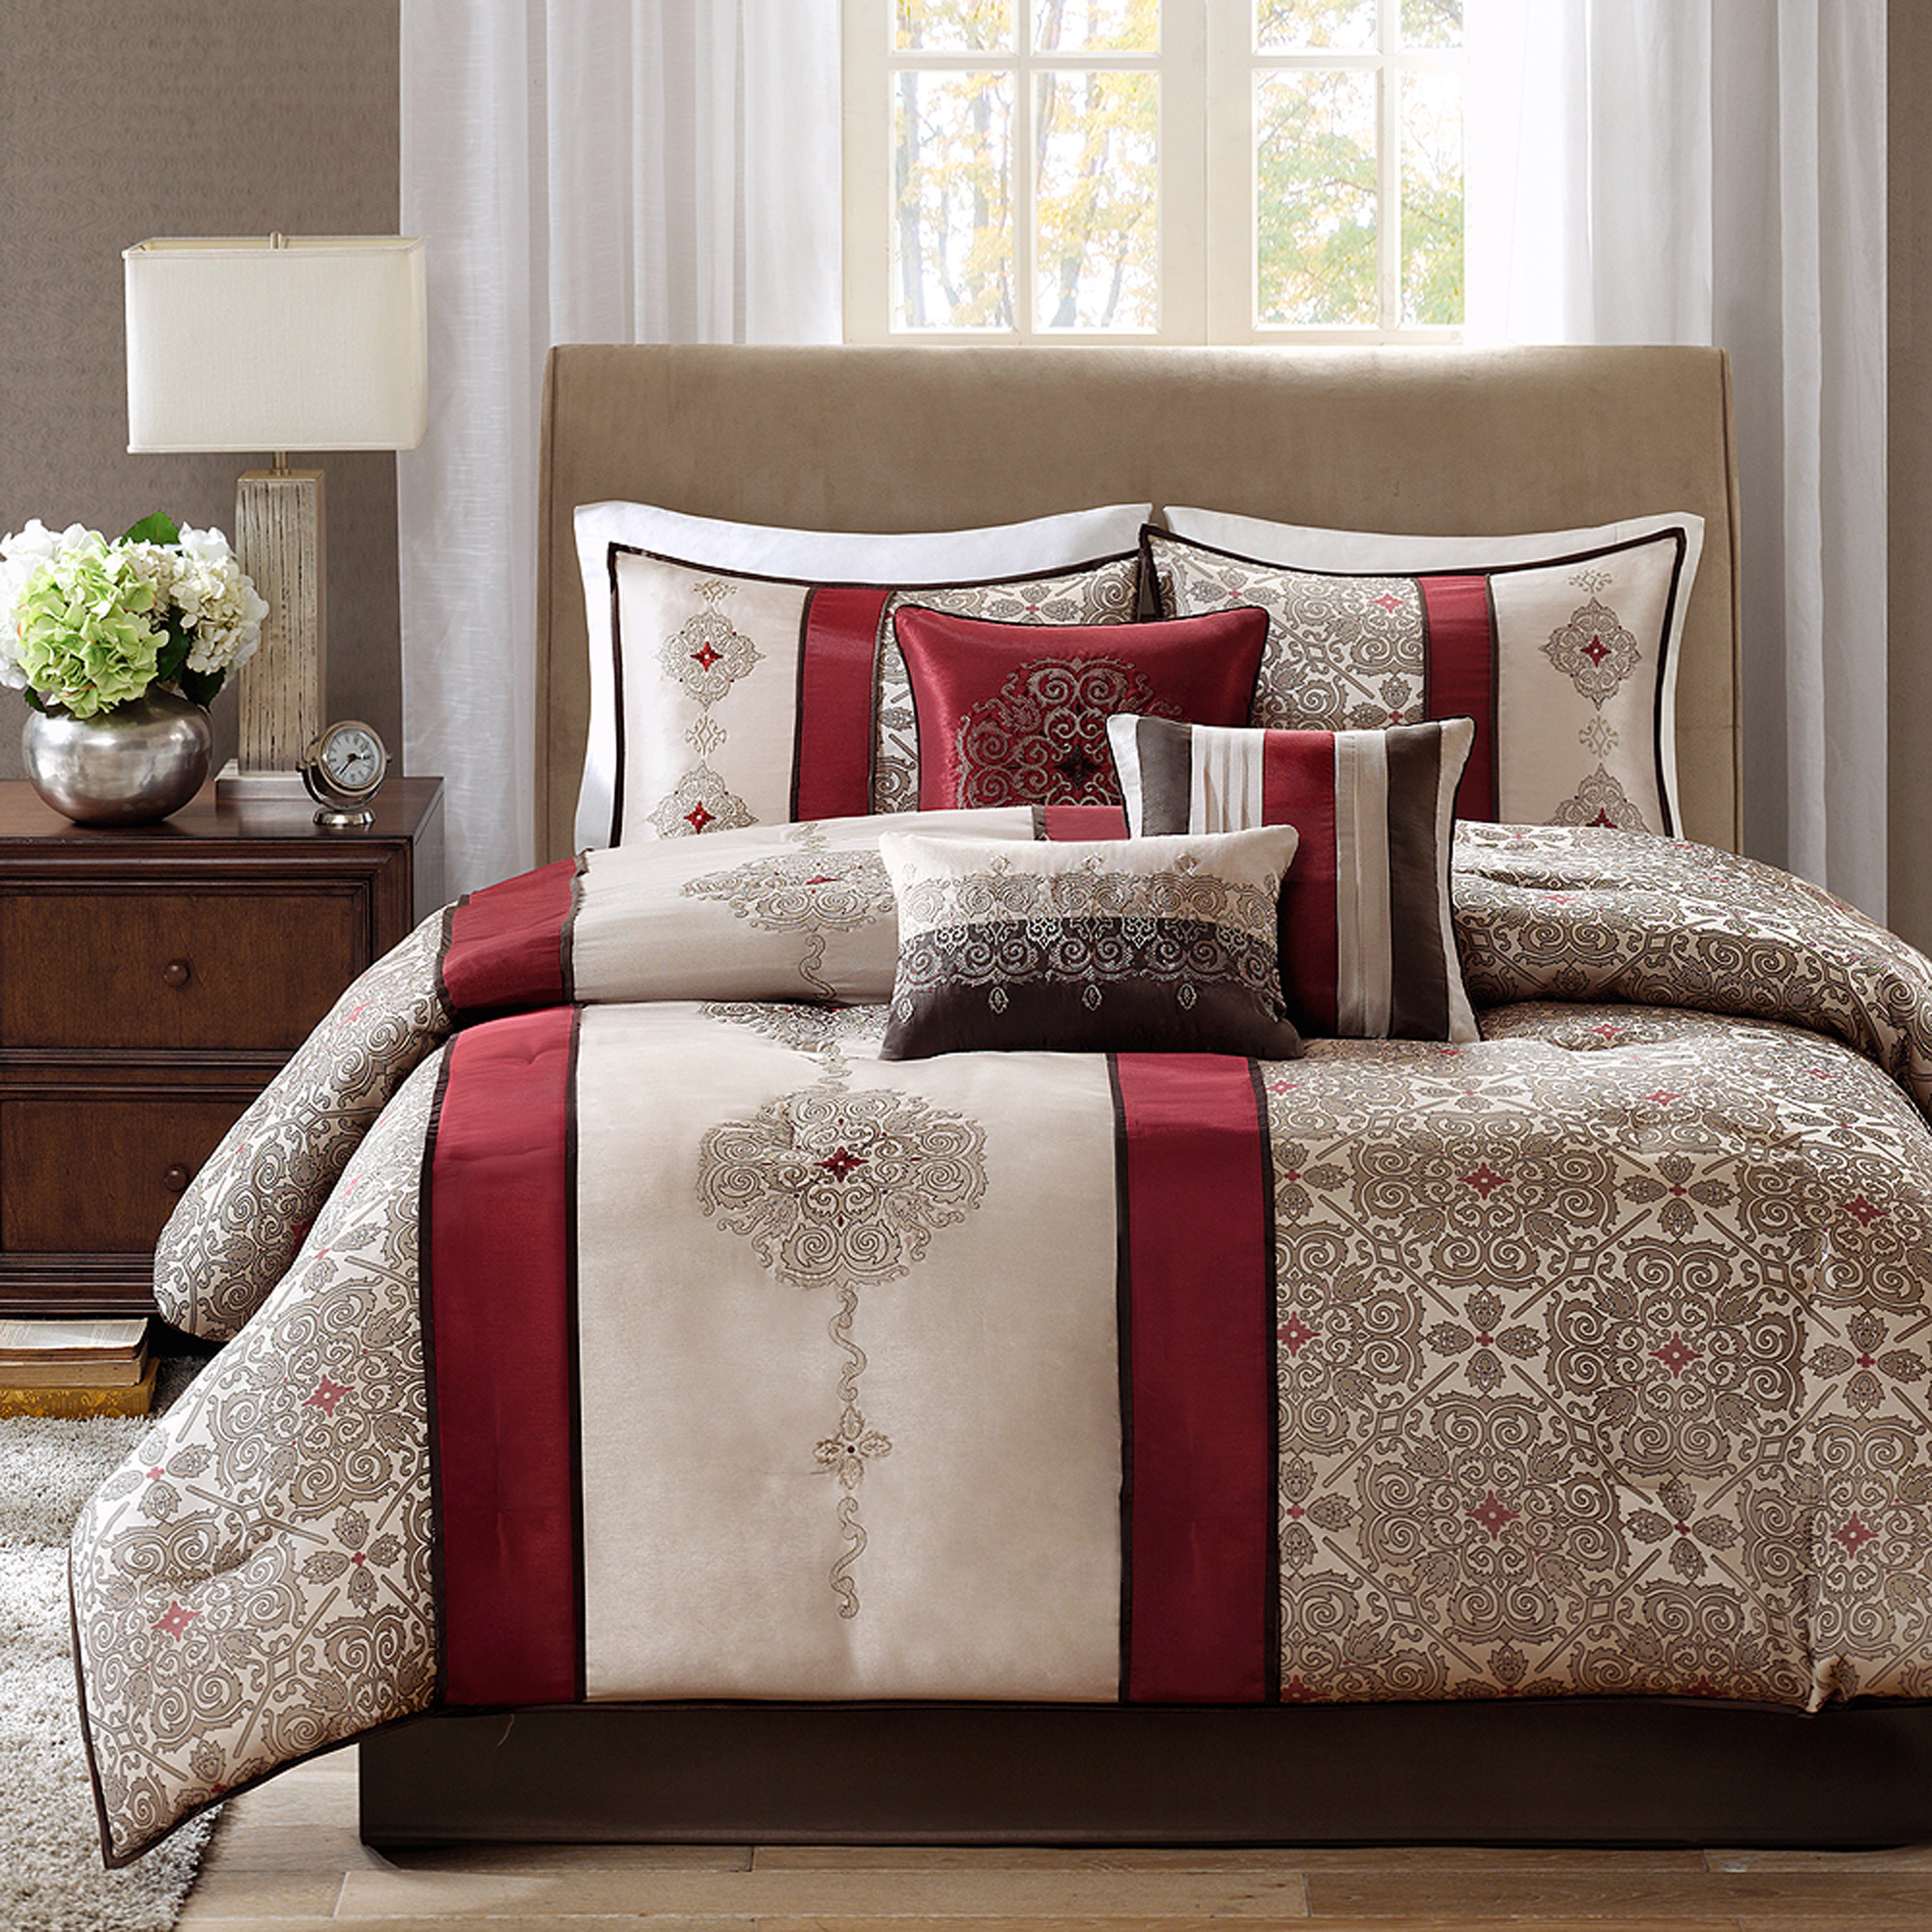 Home Essence Perry Bedding Comforter Set; Picture 2 Of 6 ... Pictures